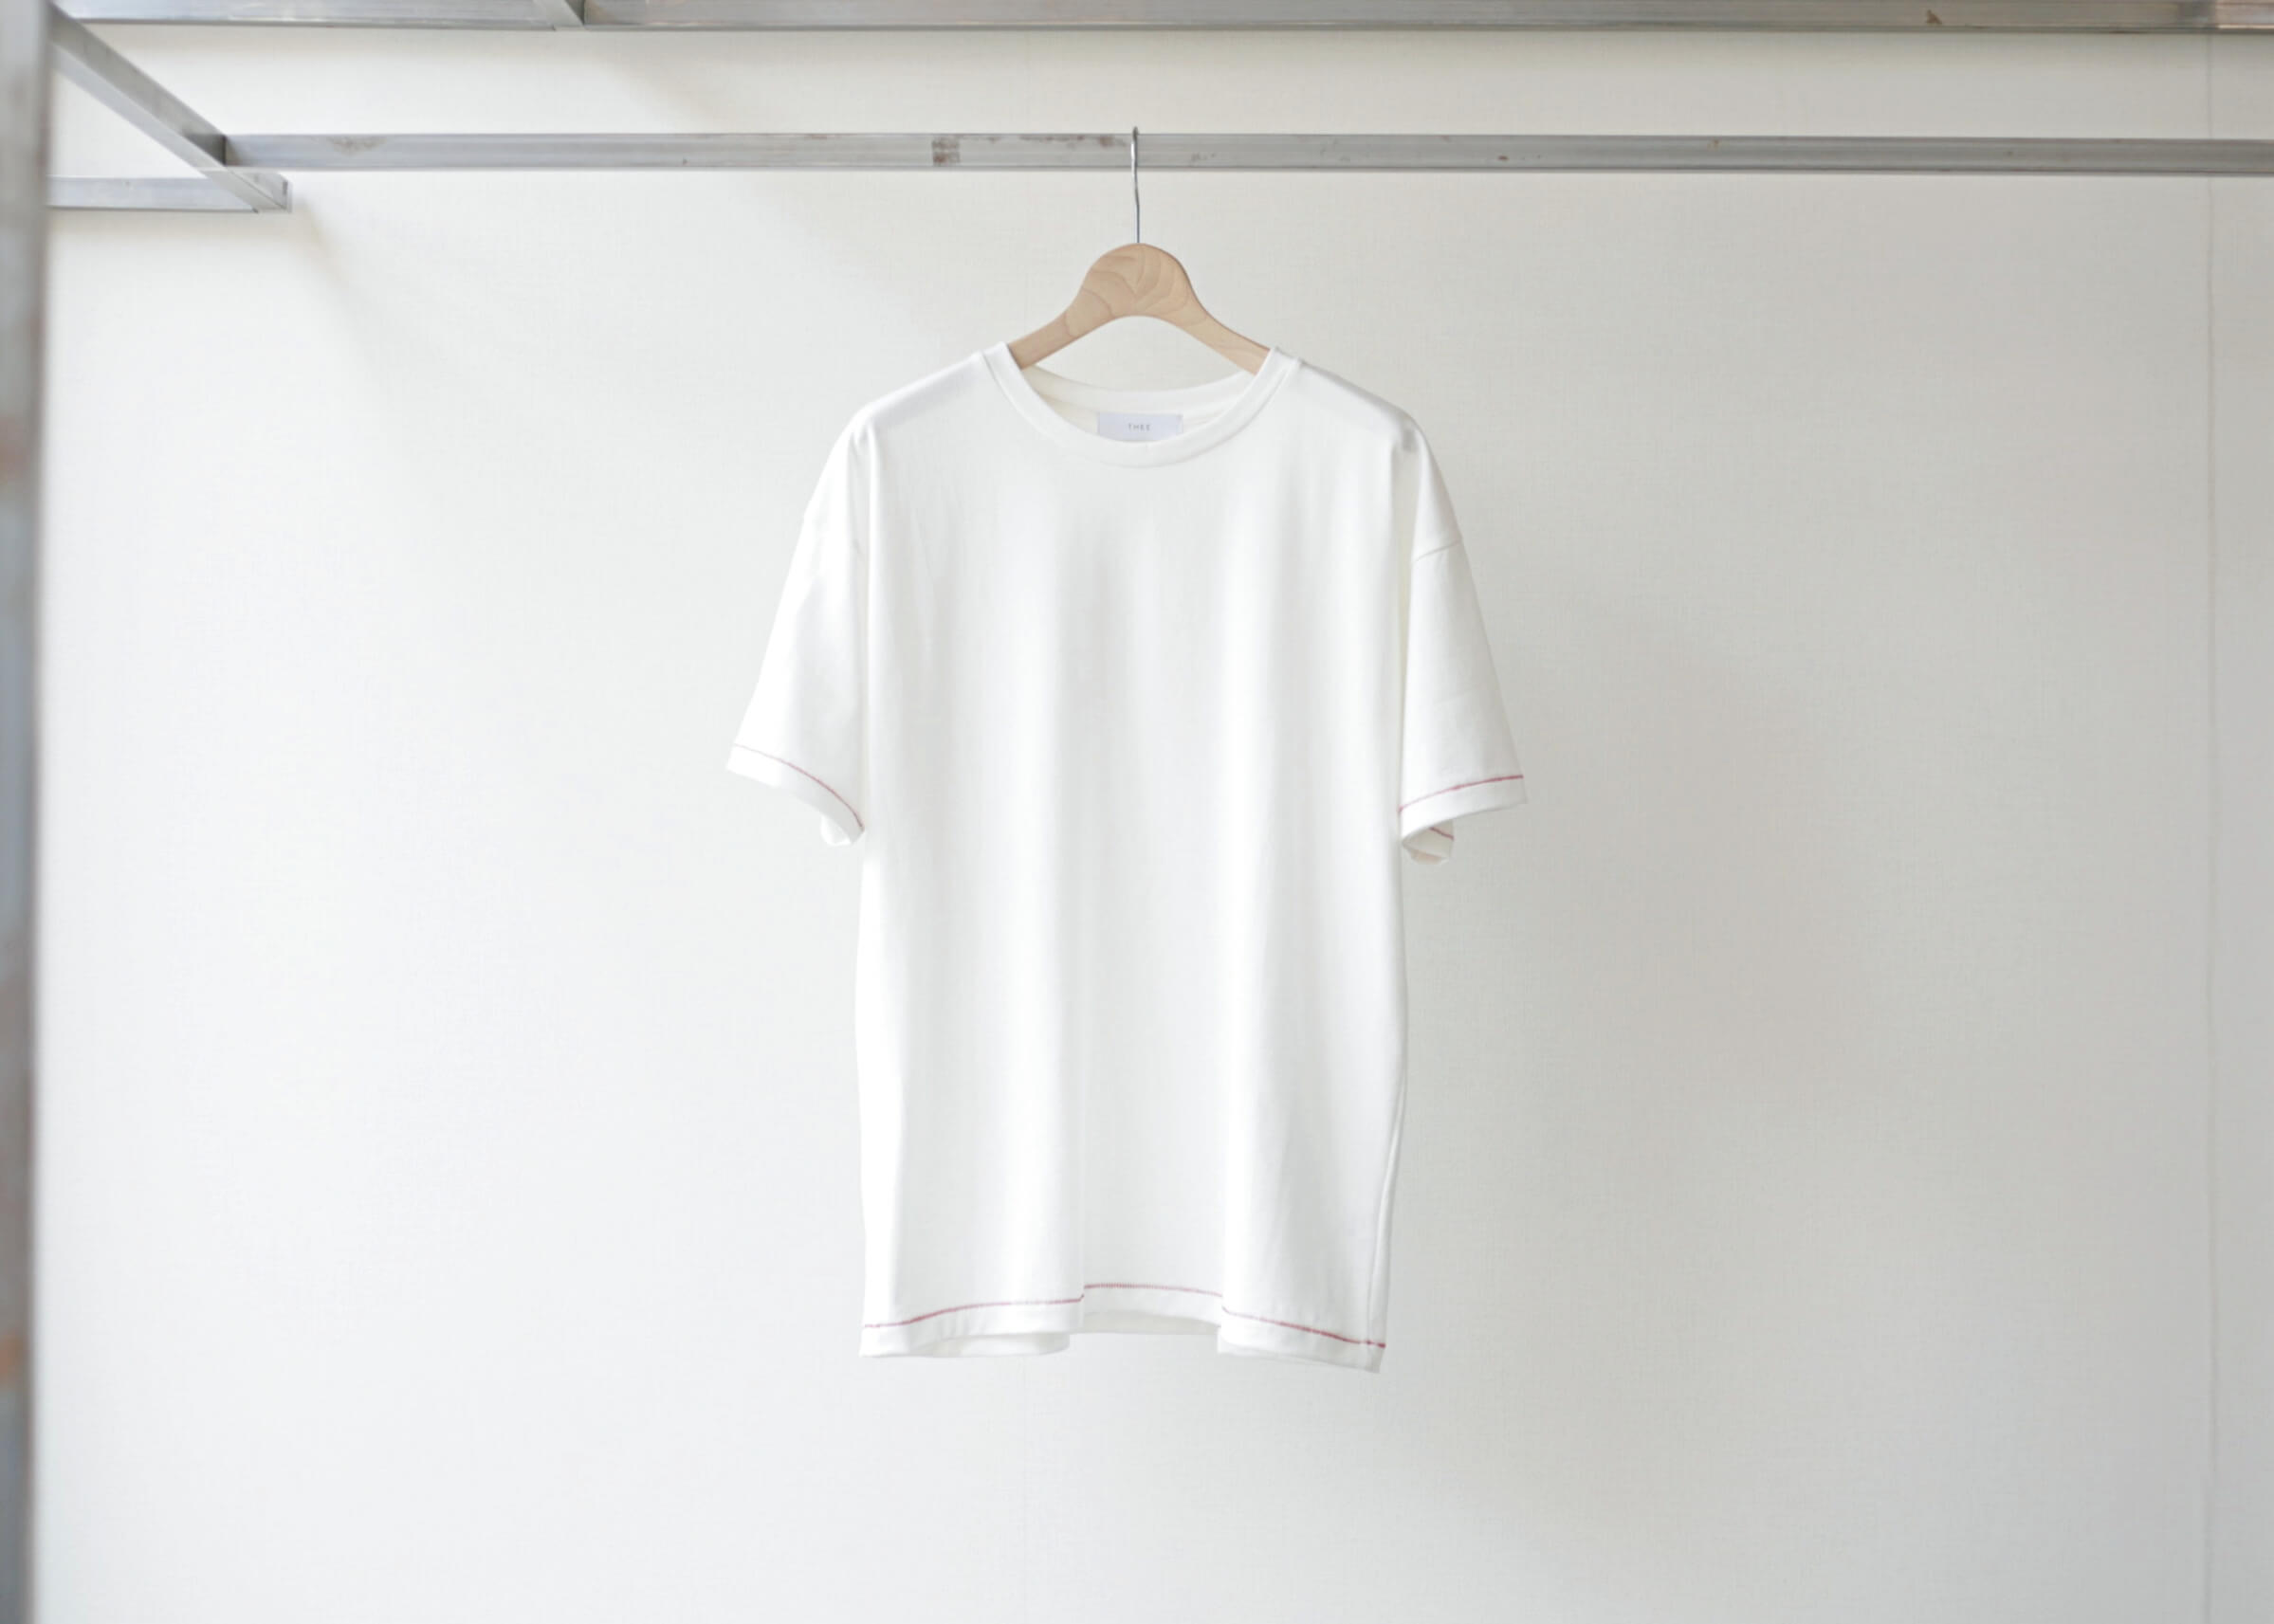 thee stitching tee white 正面の写真